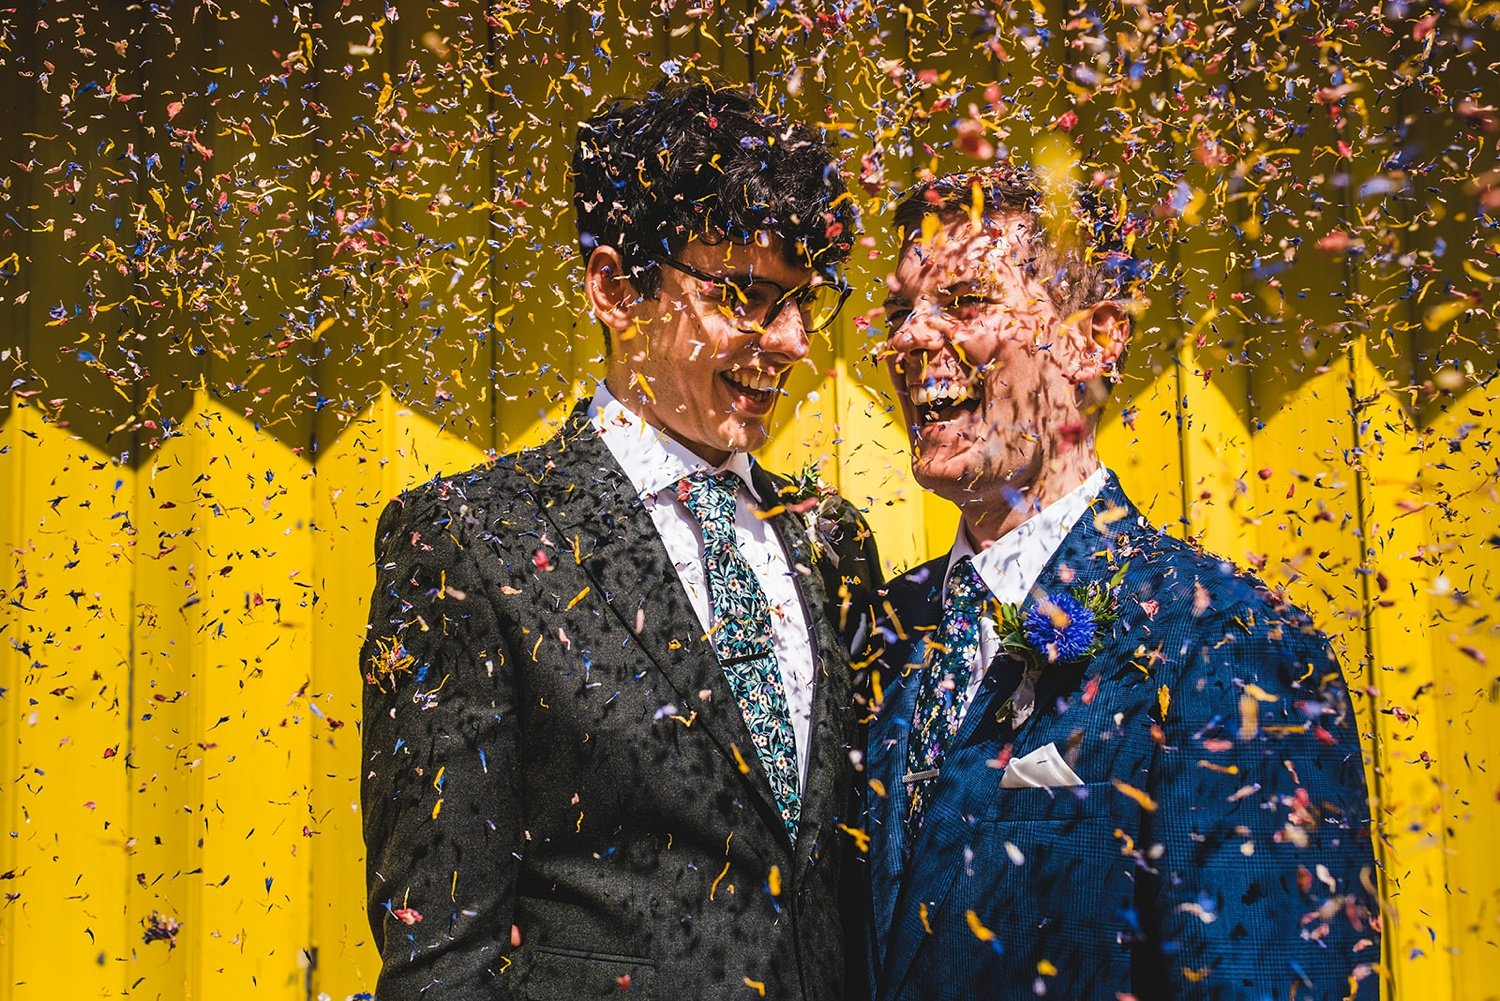 Gay couple laughing in shower of confetti